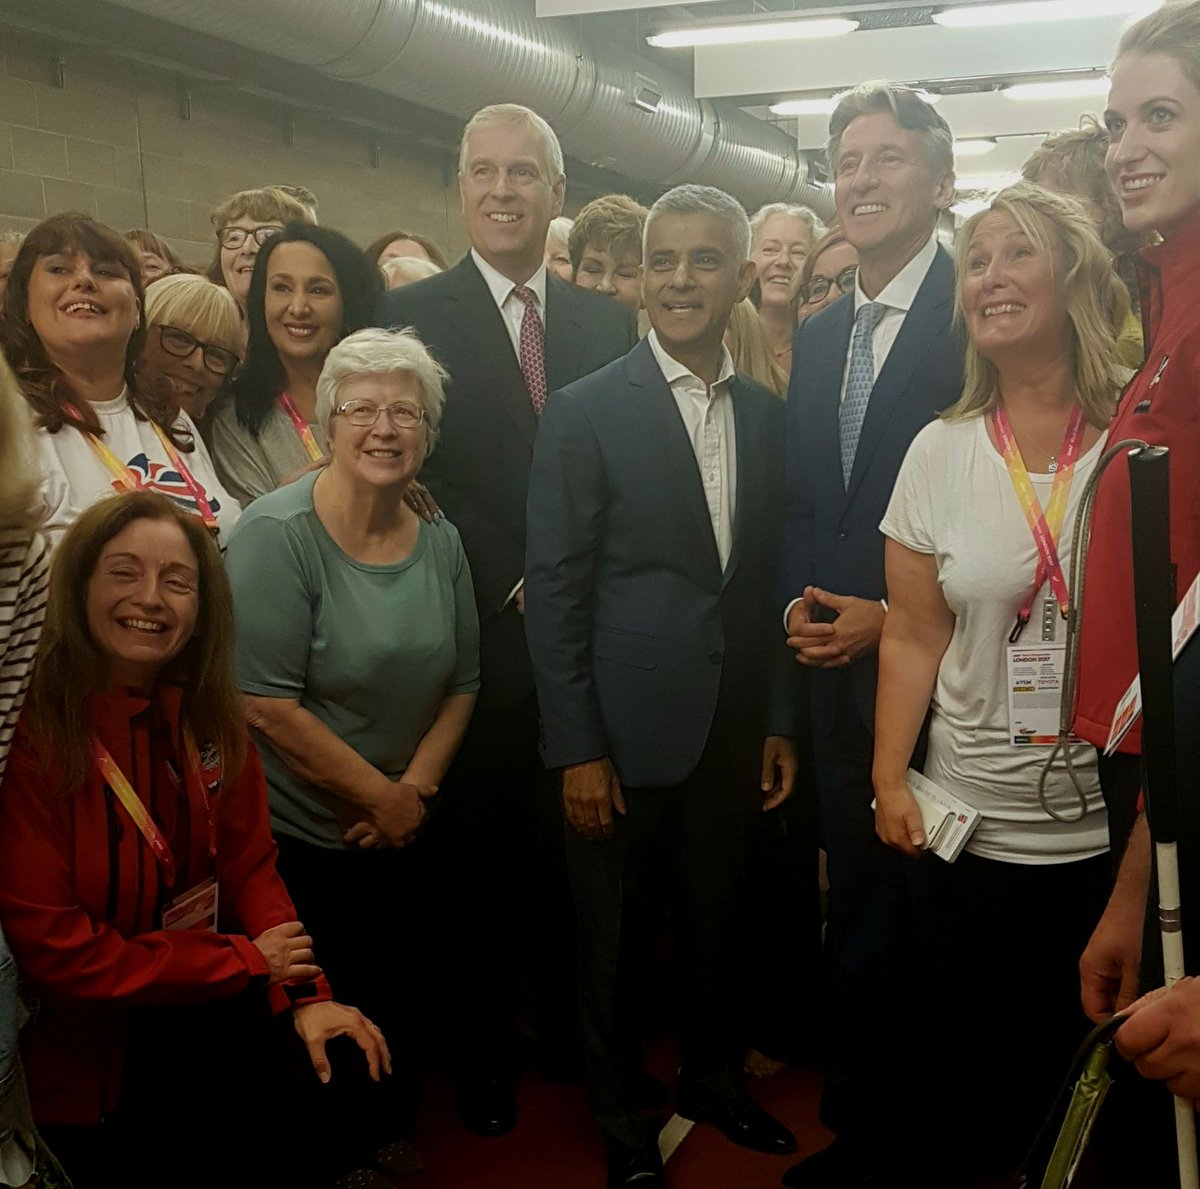 The Duke of York also met the @GamesMakerChoir at the @IAAFWorldChamps...